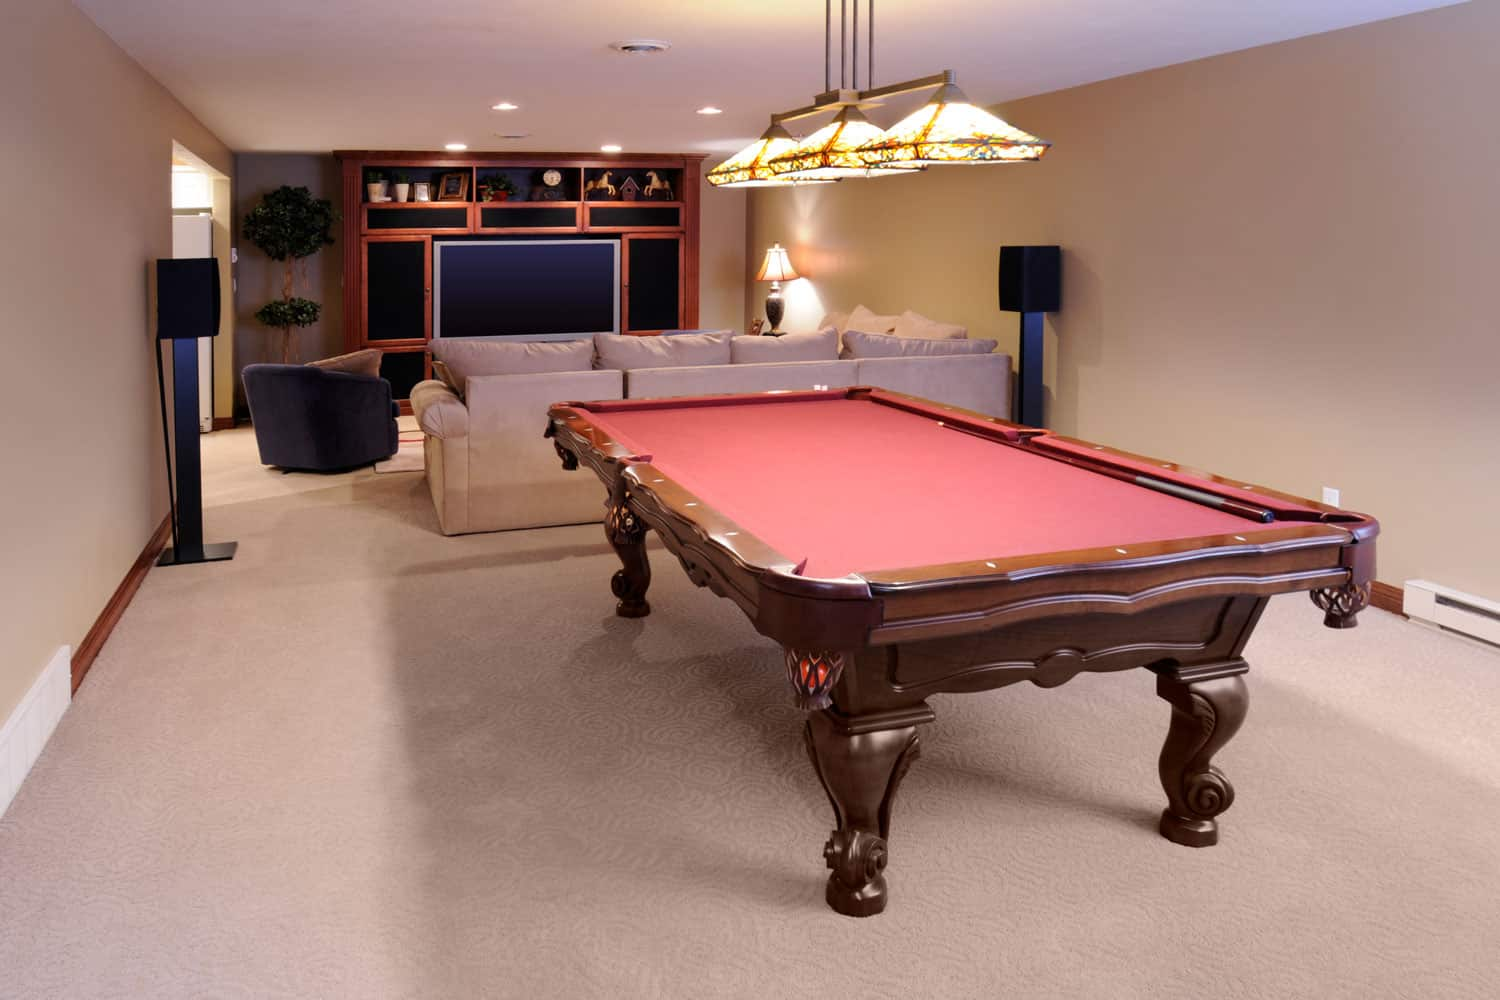 An entertainment area of a basement with carpeted flooring, beige colored walls, and a TV on the background